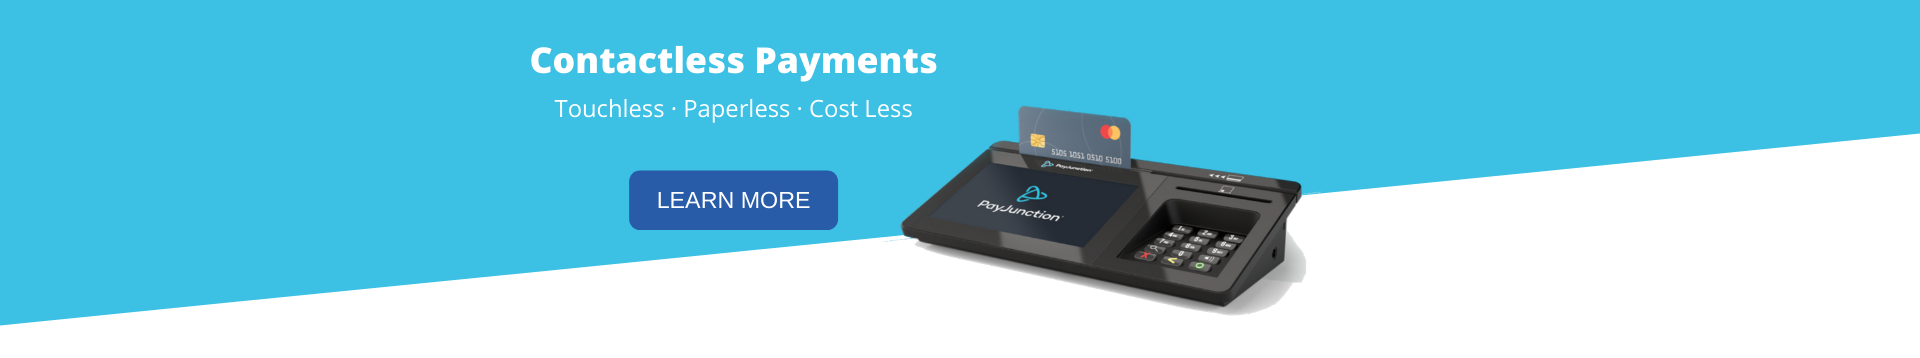 GEX Website Slide Show Contactless Payme